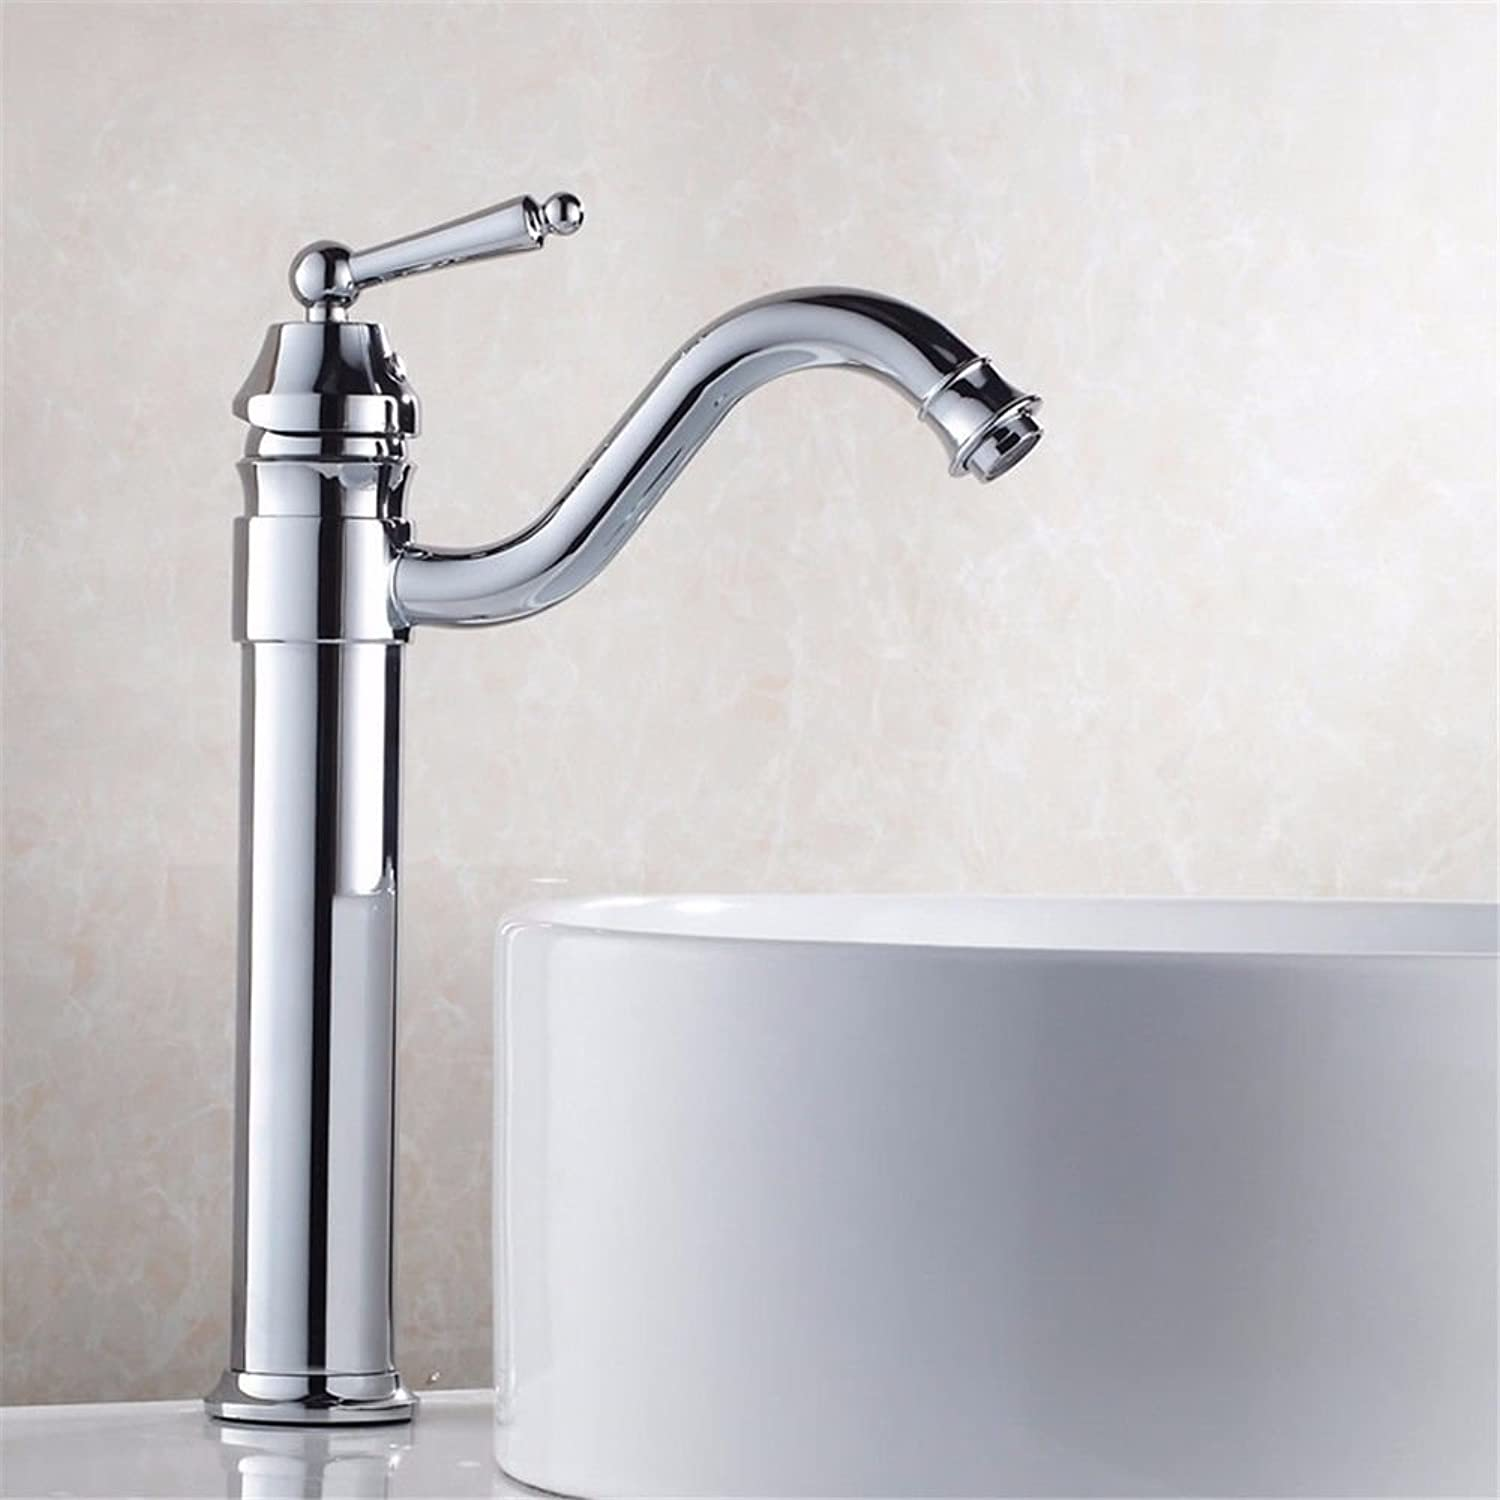 Hlluya Professional Sink Mixer Tap Kitchen Faucet The copper basin faucet surface 盆 antique bathroom kitchen sink hot and cold Swivel, Chrome Plated